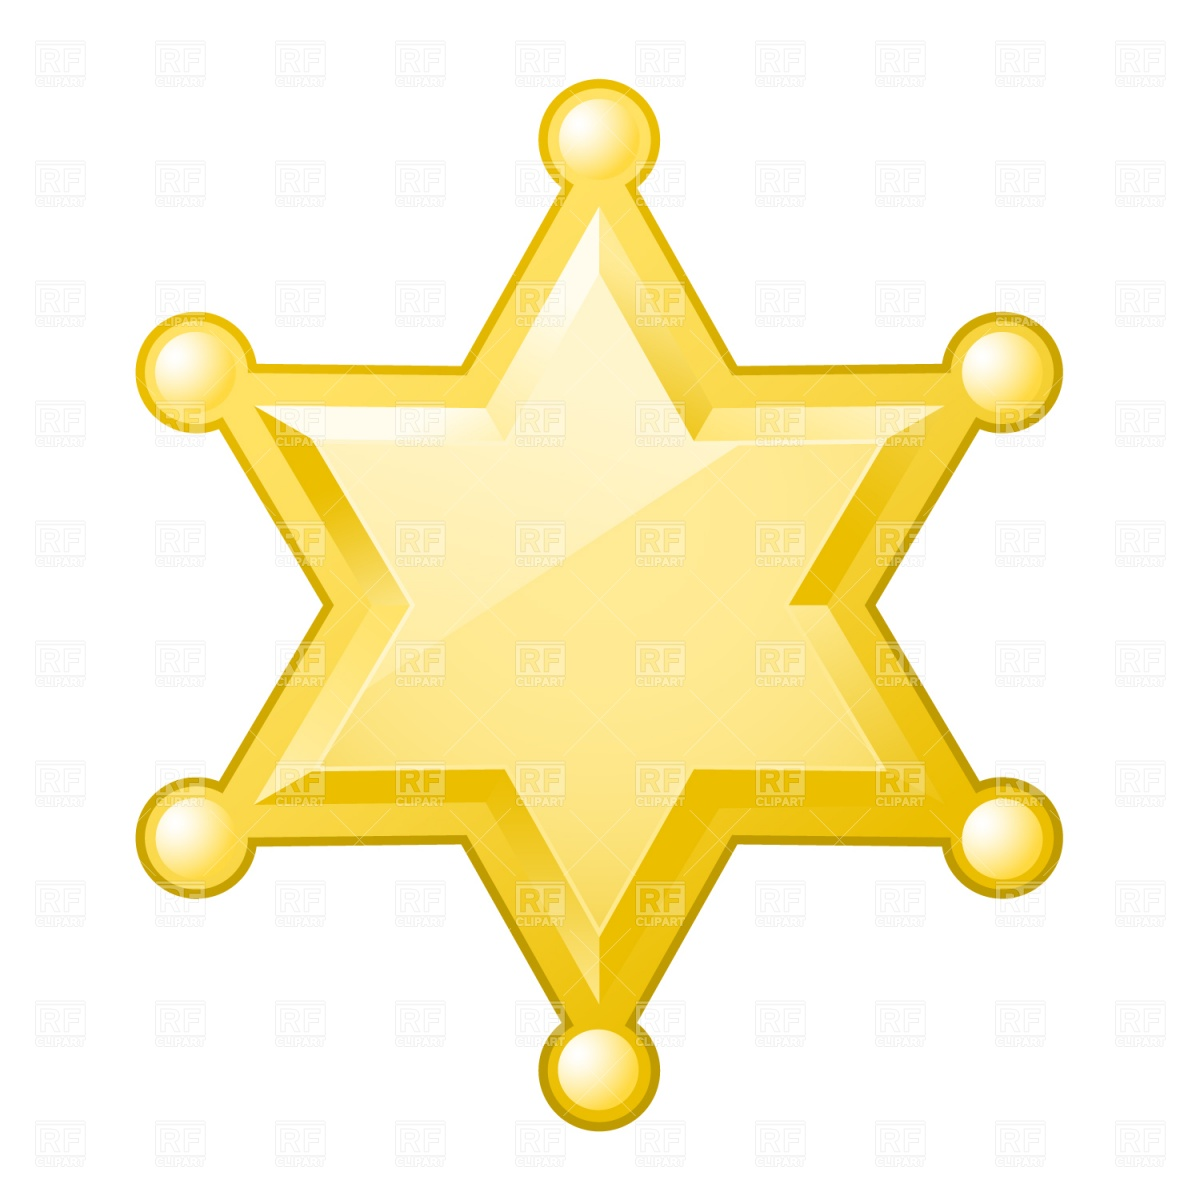 11 Sheriff Badge Icon Images